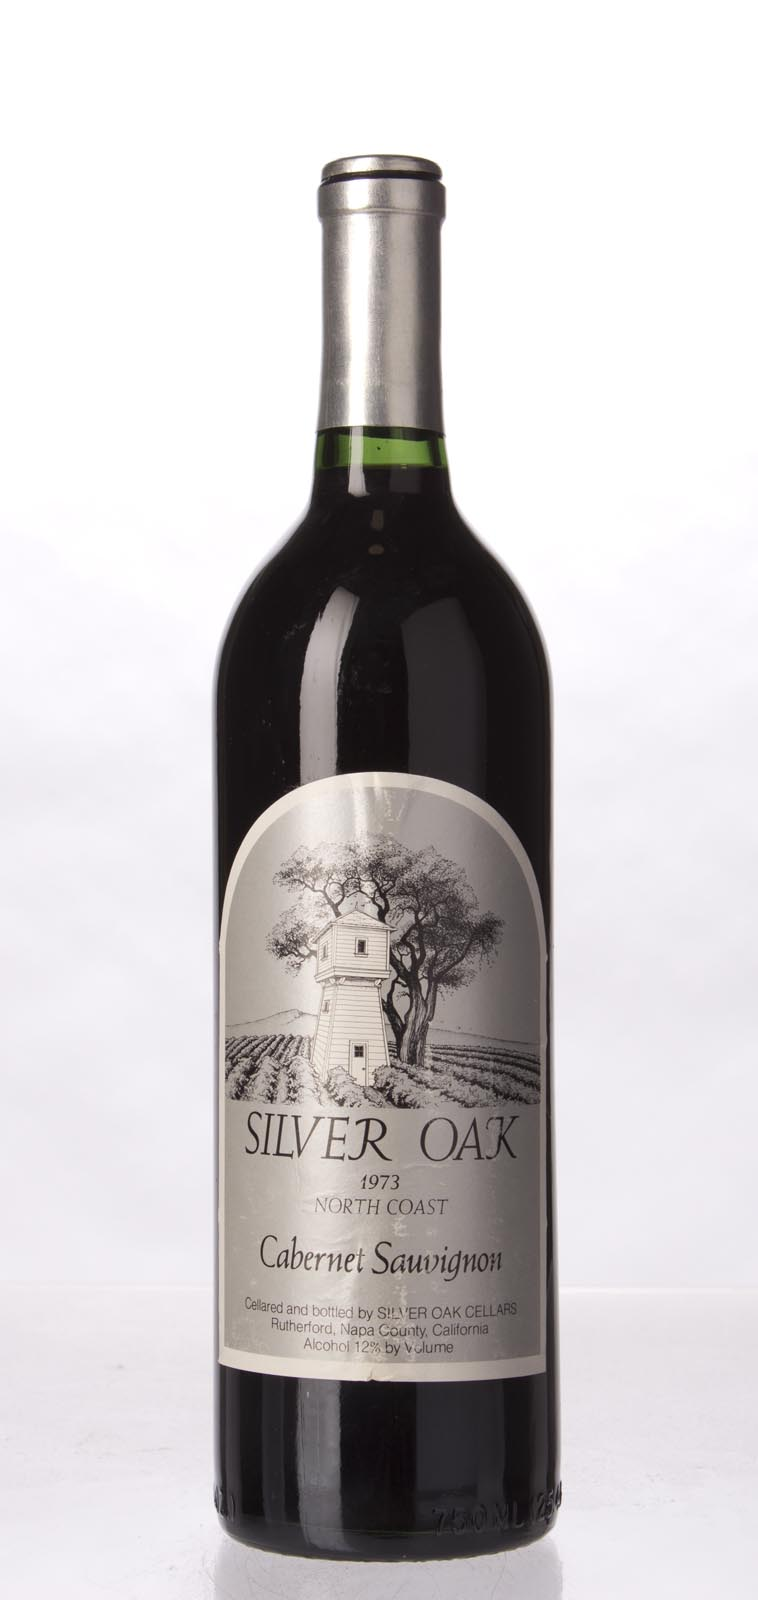 Silver Oak Cabernet Sauvignon North Coast 1973, 750mL () from The BPW - Merchants of rare and fine wines.